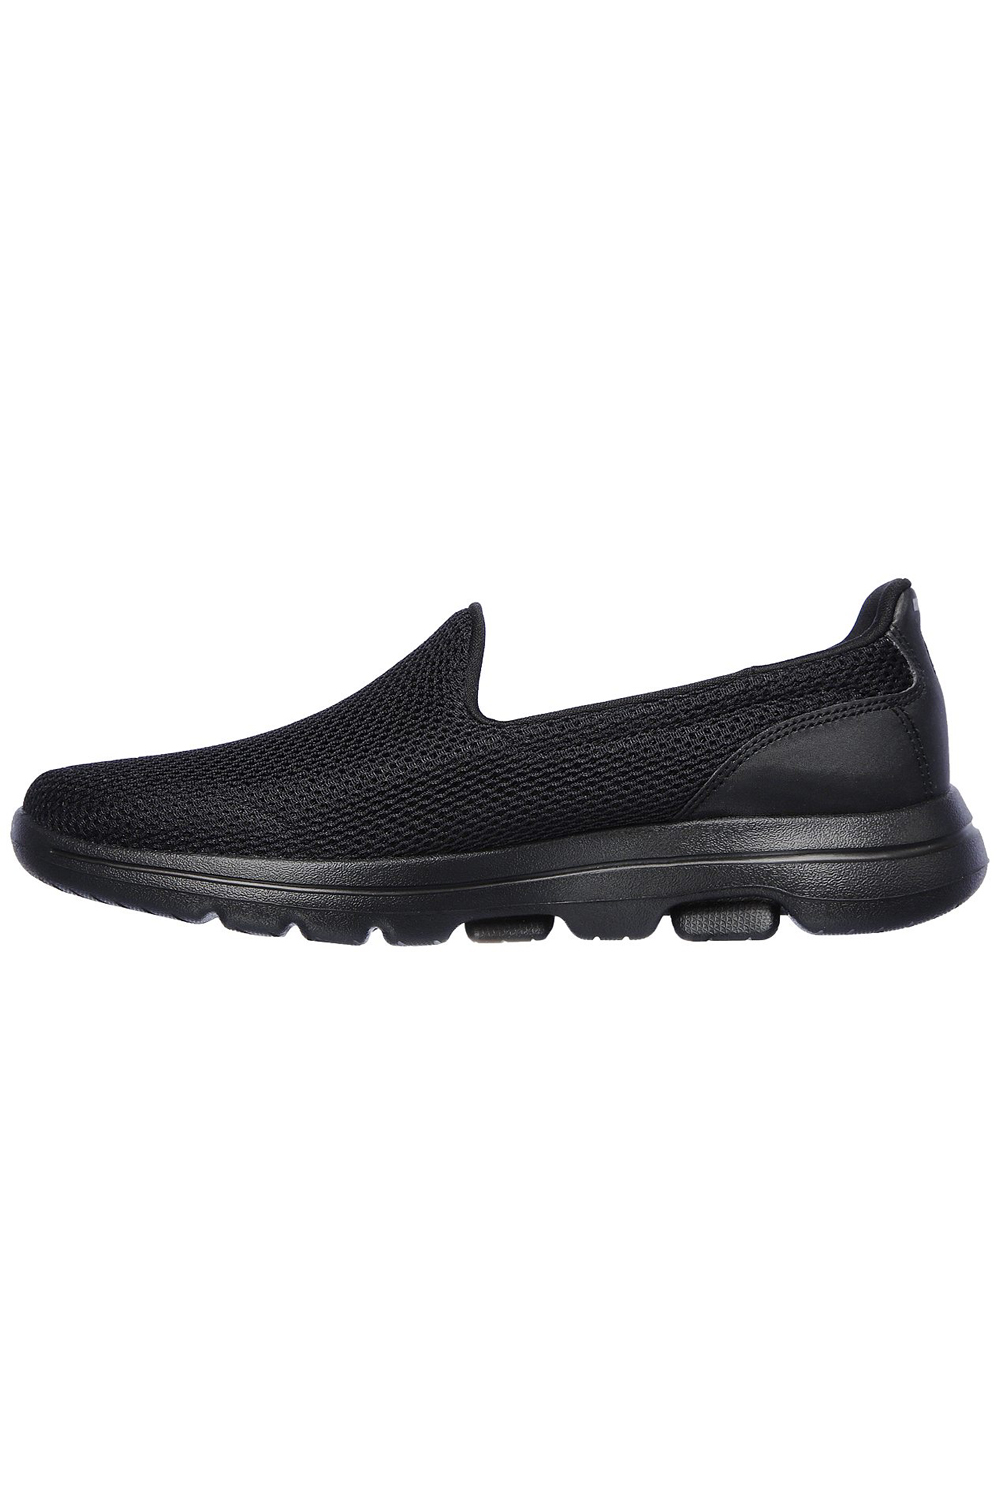 Skechers Womens Go Walk 5 Ultra Comfort Air Cooled Insole Slip On Trainers